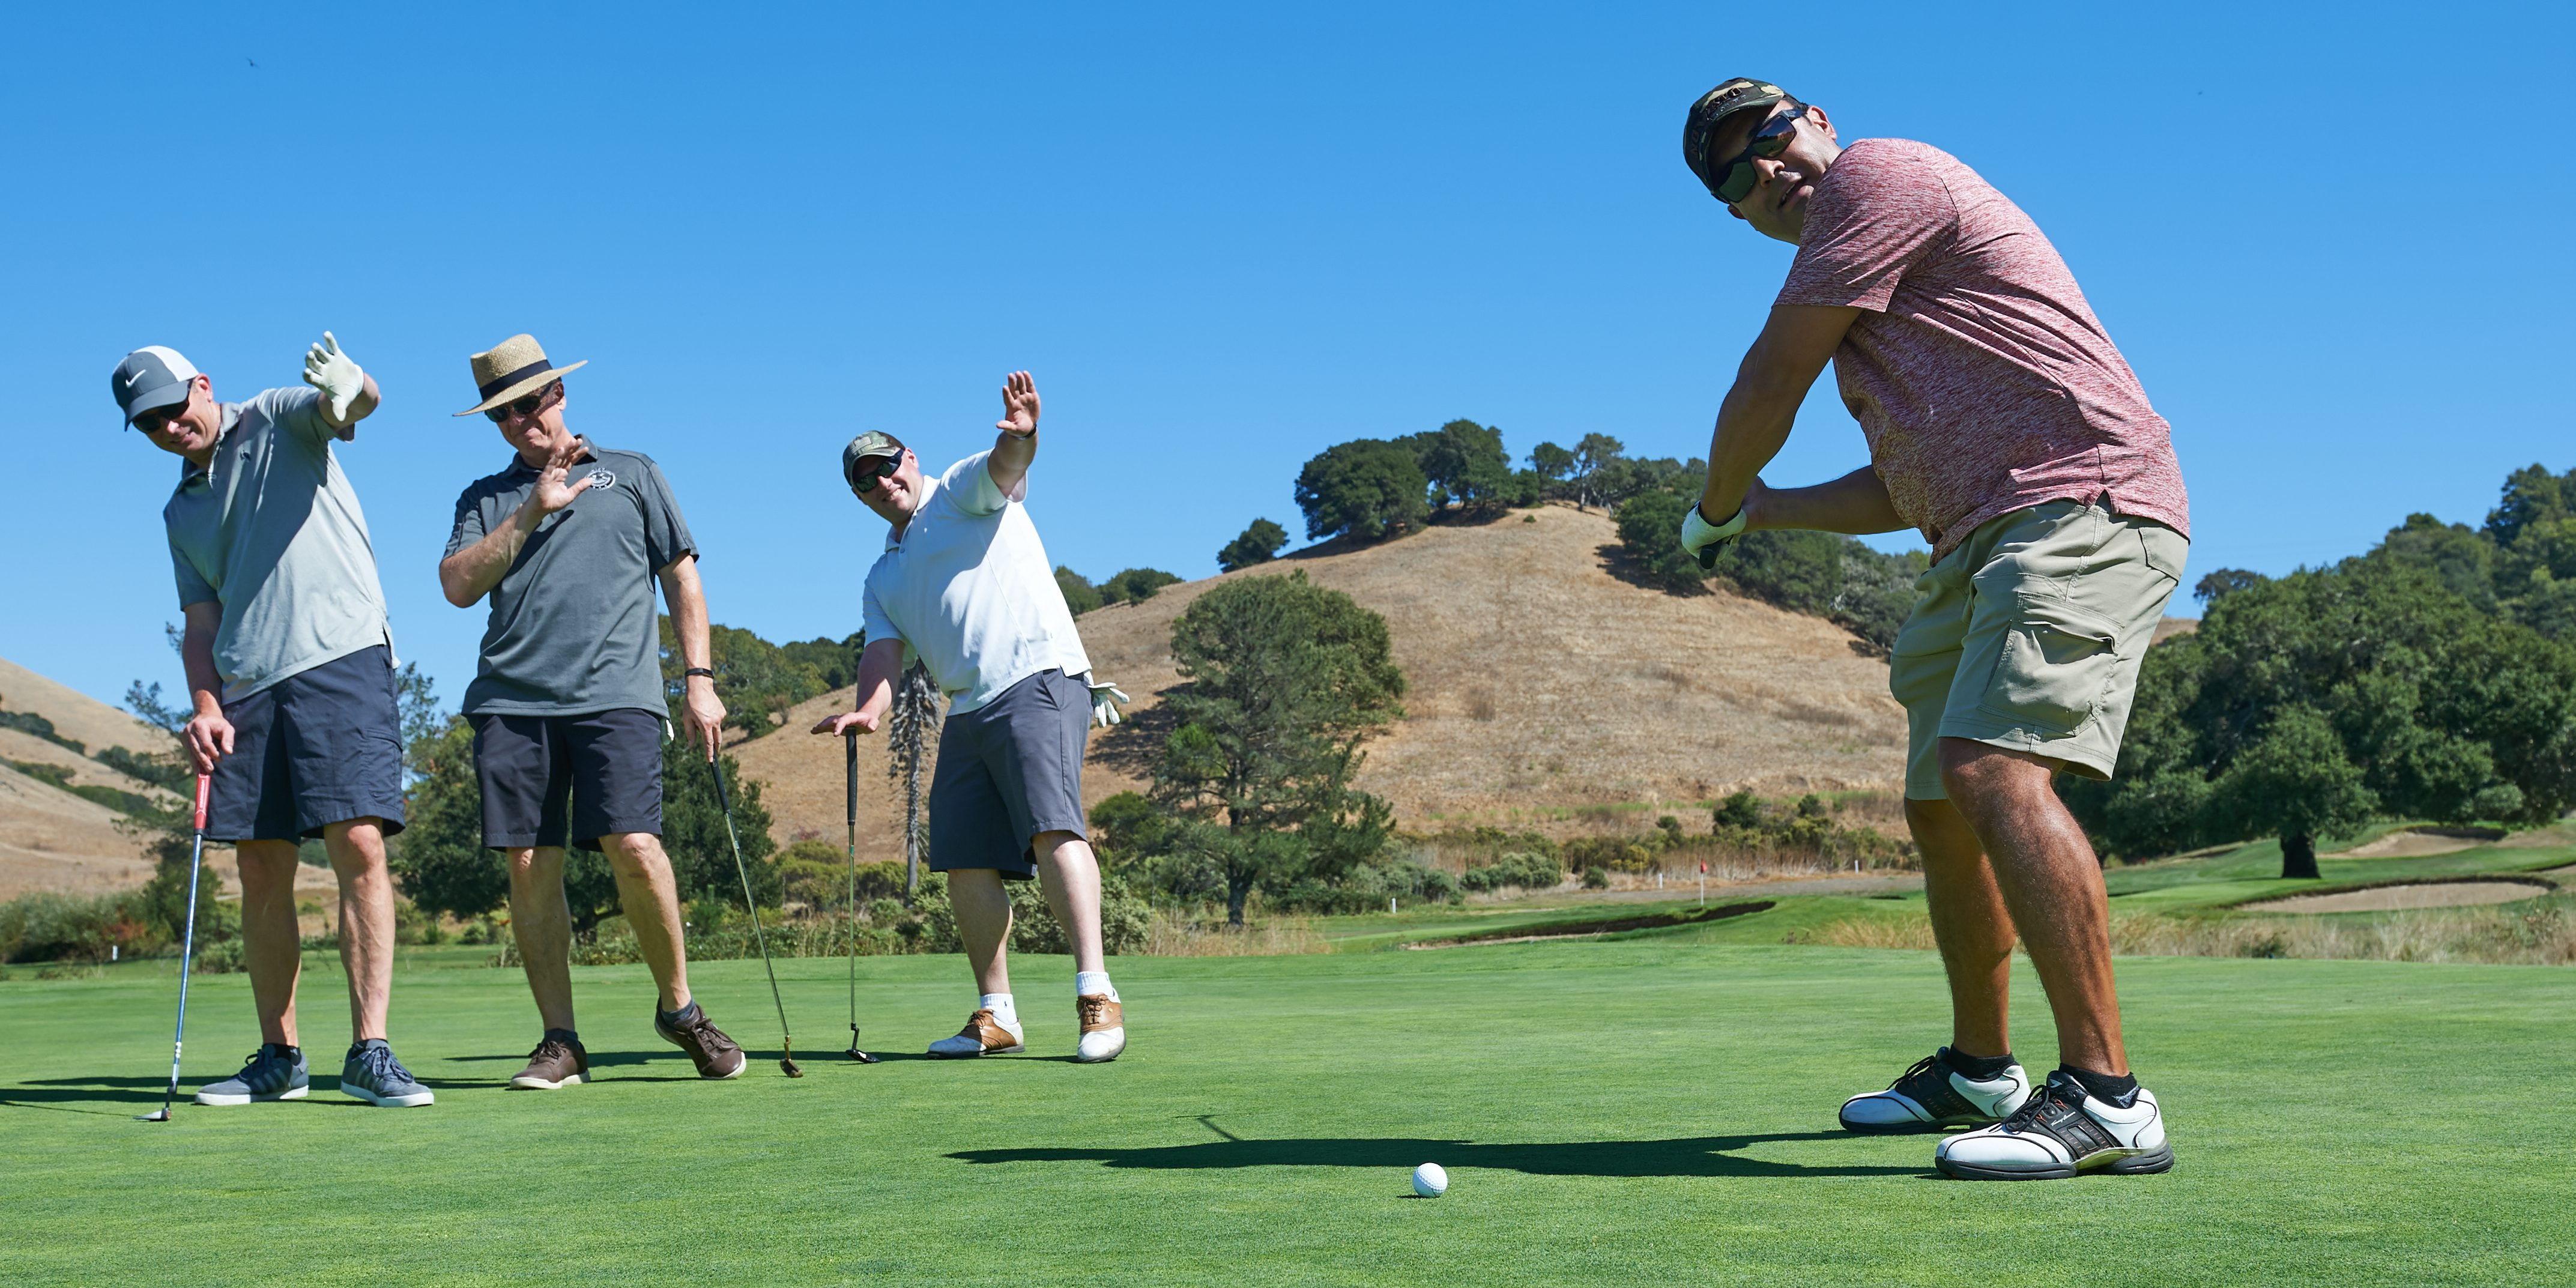 Golf Tournament Novato Chamber Sutter Novato Youth Rotary Elks San Rafael Chamber Petaluma Indian Valley Bay Club Stone Tree Eklund Drew Chamber Coy Athas Eric Lucan